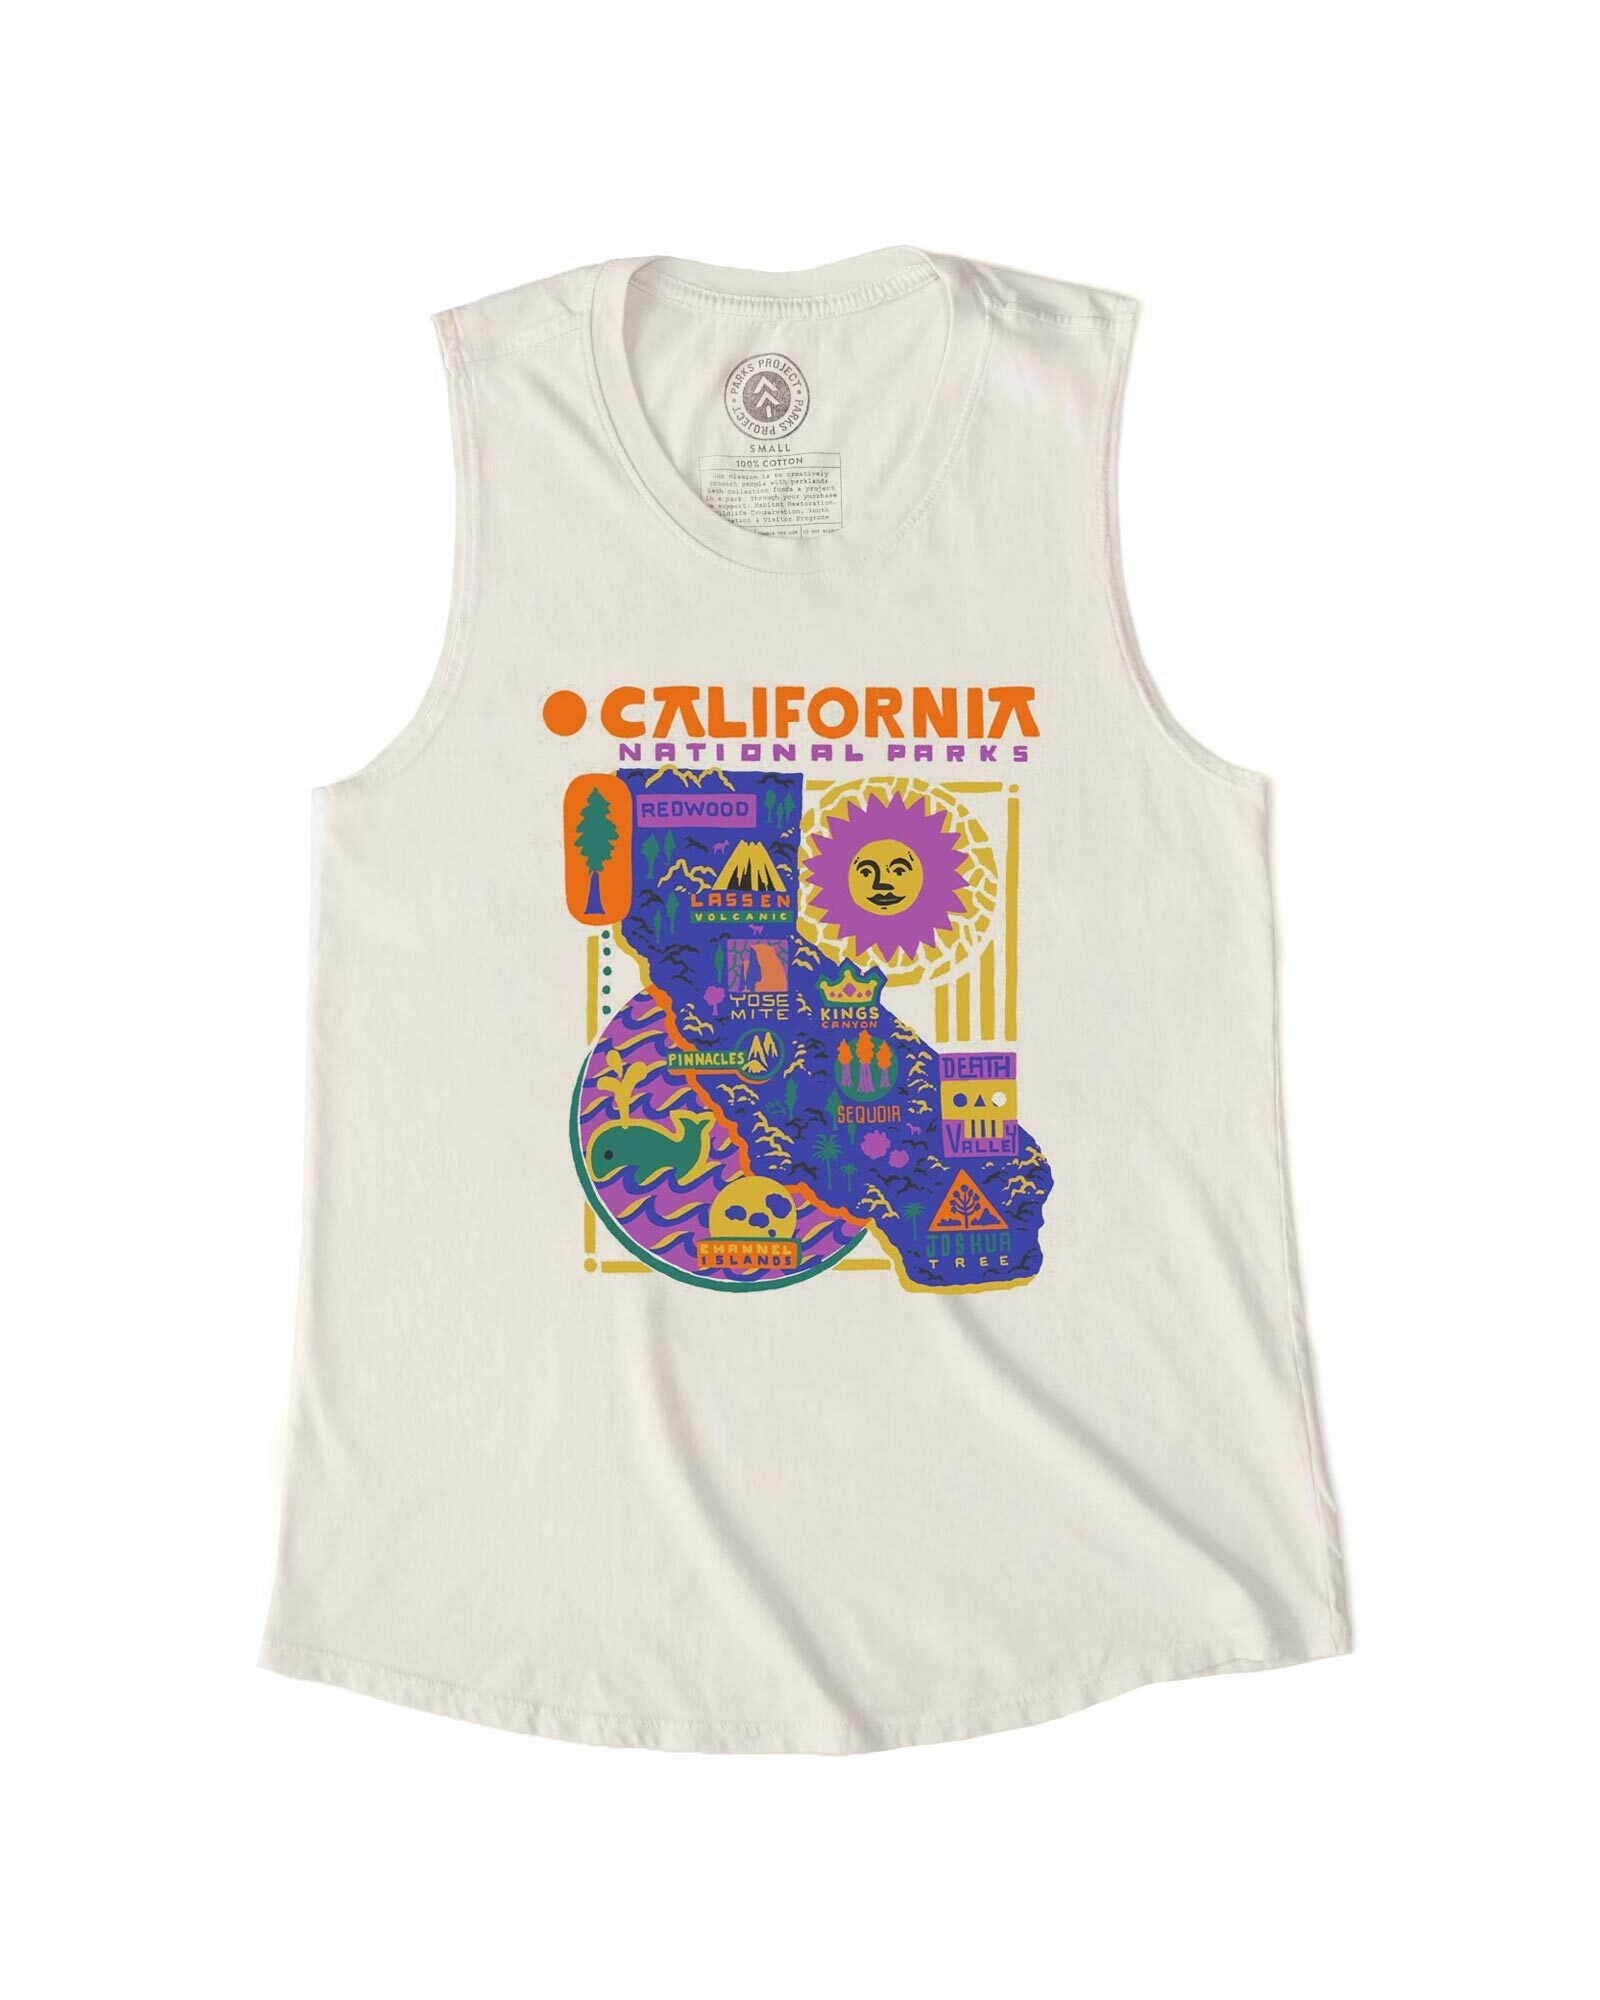 Funky California Parks Sleeveless Tank | Parks Project | National Park Tank